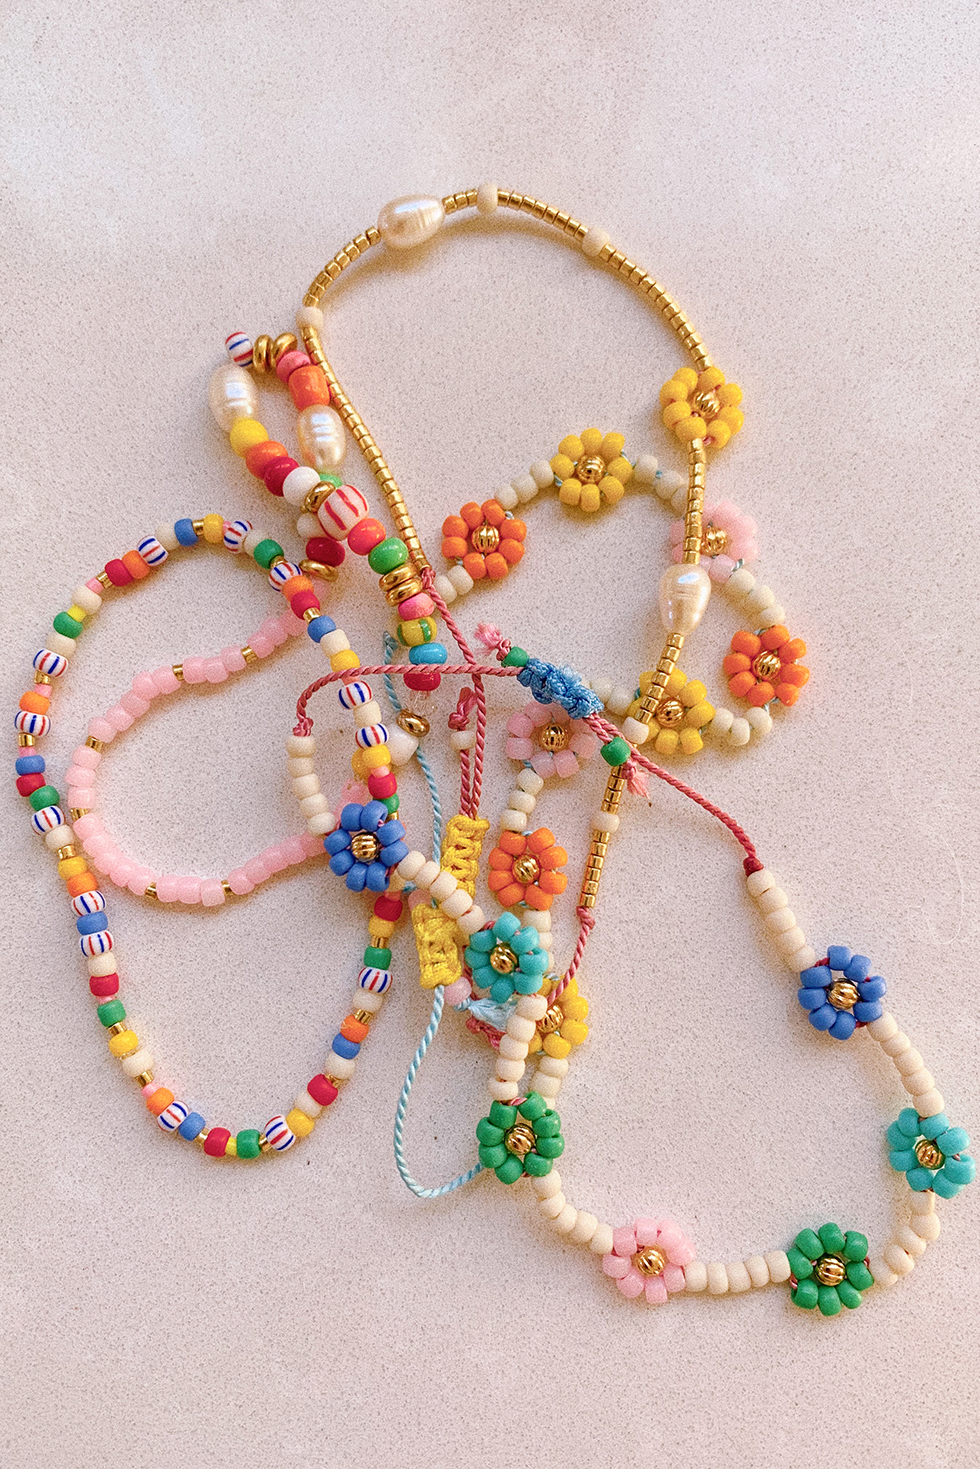 Honestly, is there anything happier than daisies?! I was desperately needing a dose of happy over the weekend and whipped up a few colorful bracelets to soothe the soul. Making daisy chains from seed beads…